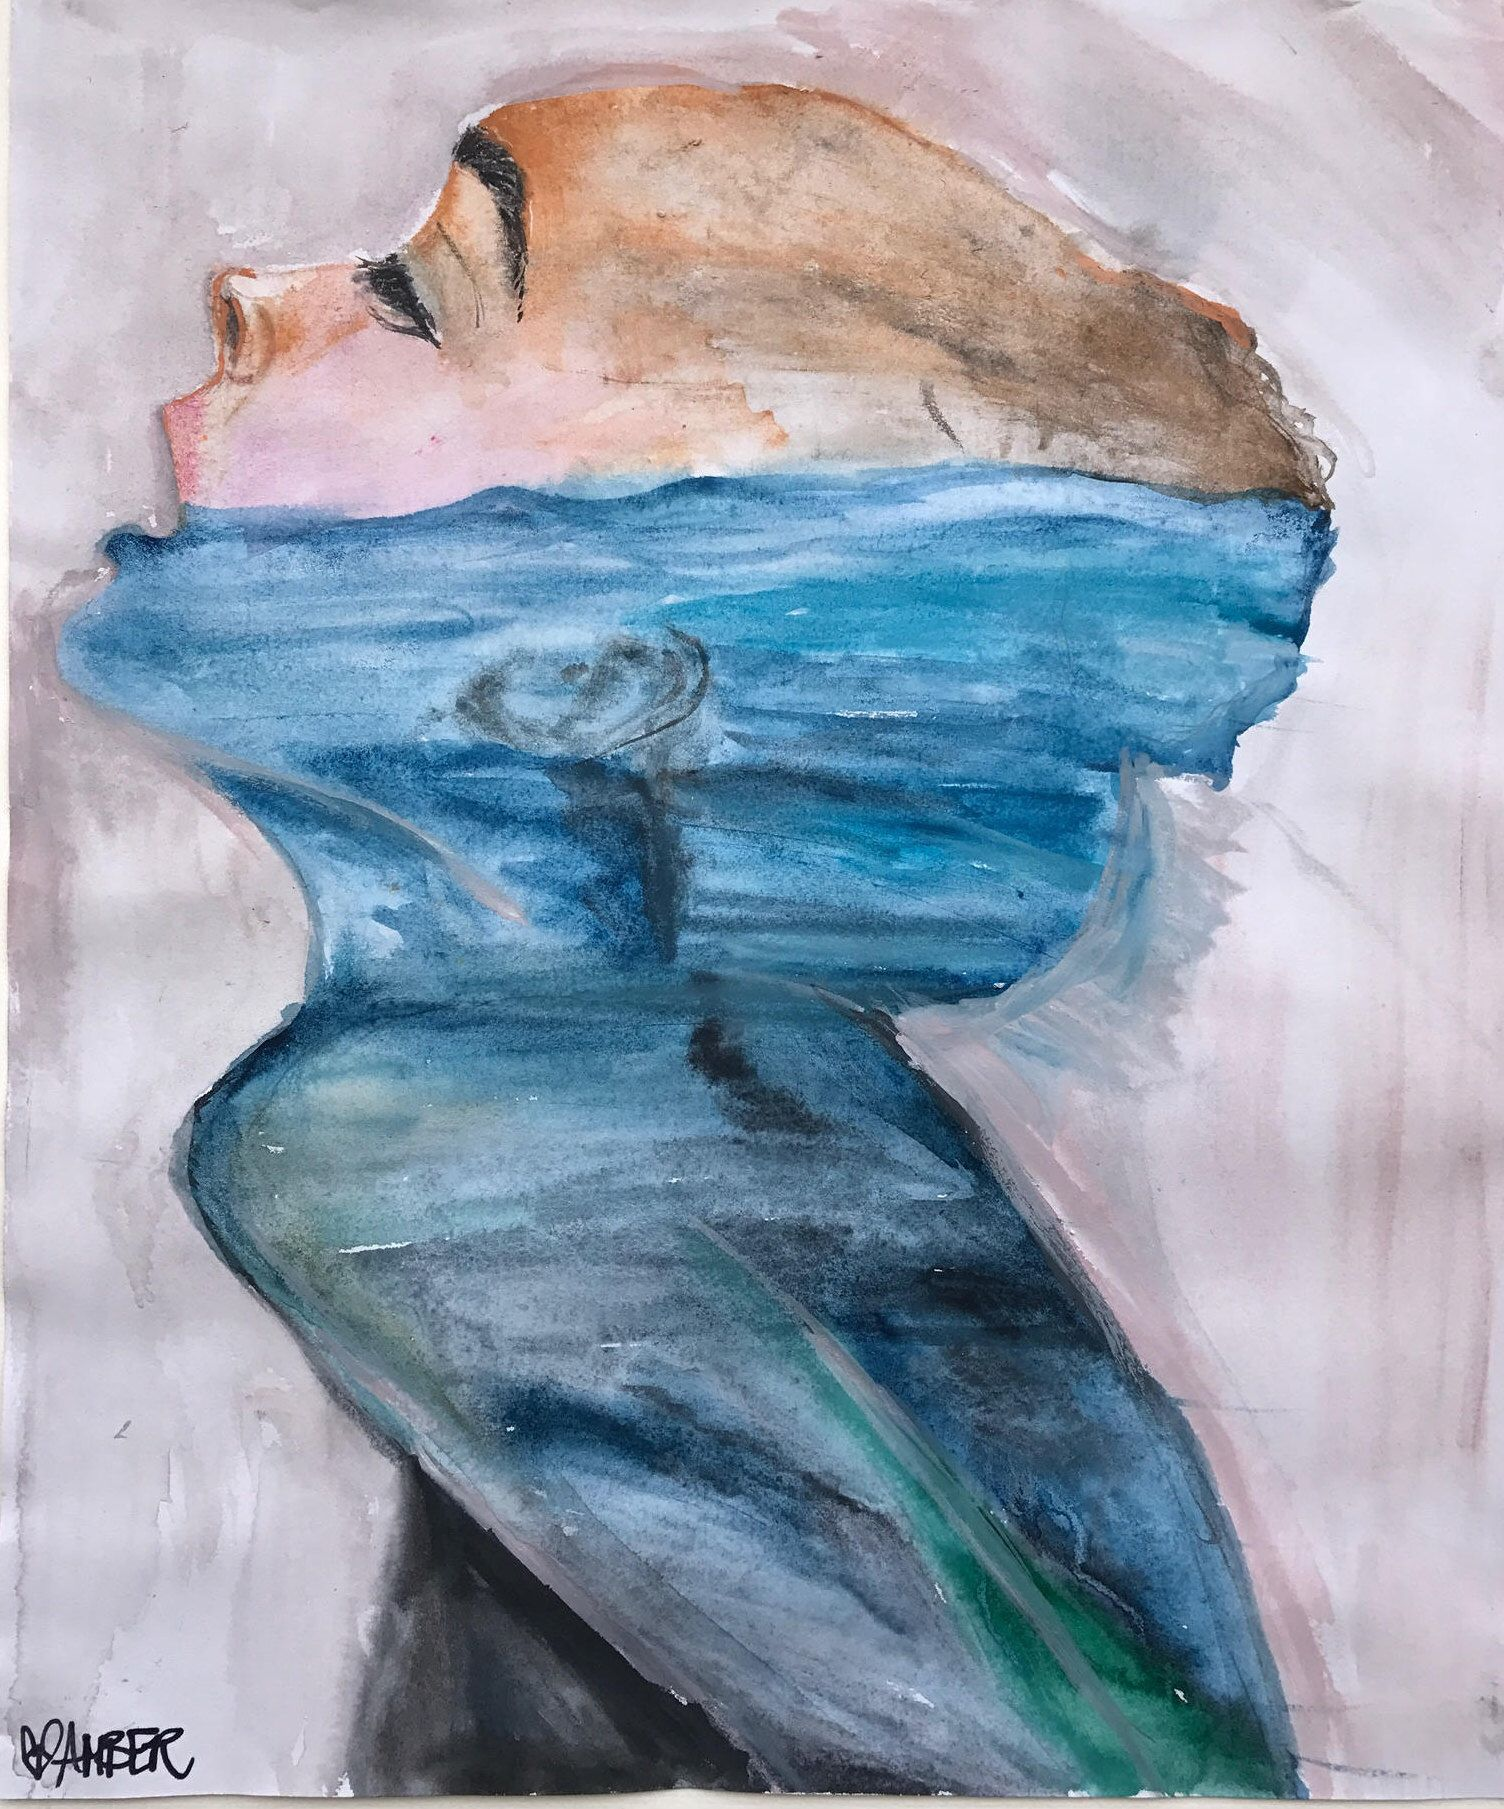 Drowning Help Me By Amber Mclean Watercolor Painting With Feelings